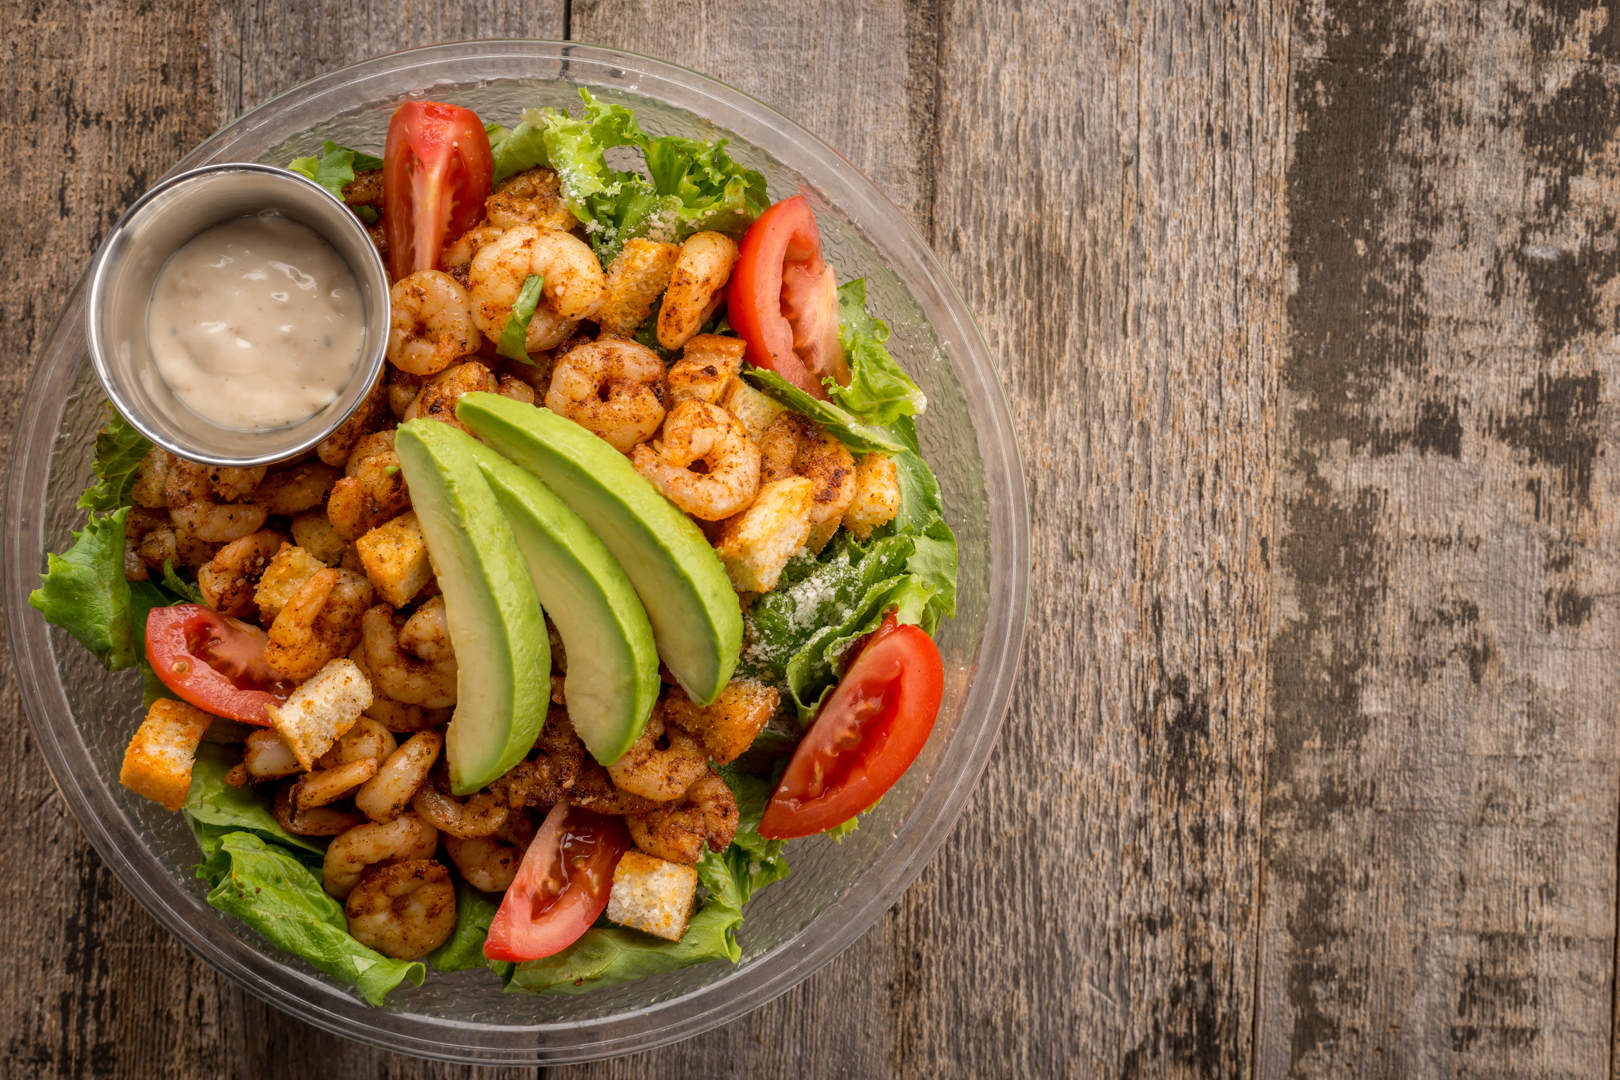 Blackened Shrimp Salad Aw Shucks - Theresa Fernandez Photography | Dallas Food Photographer